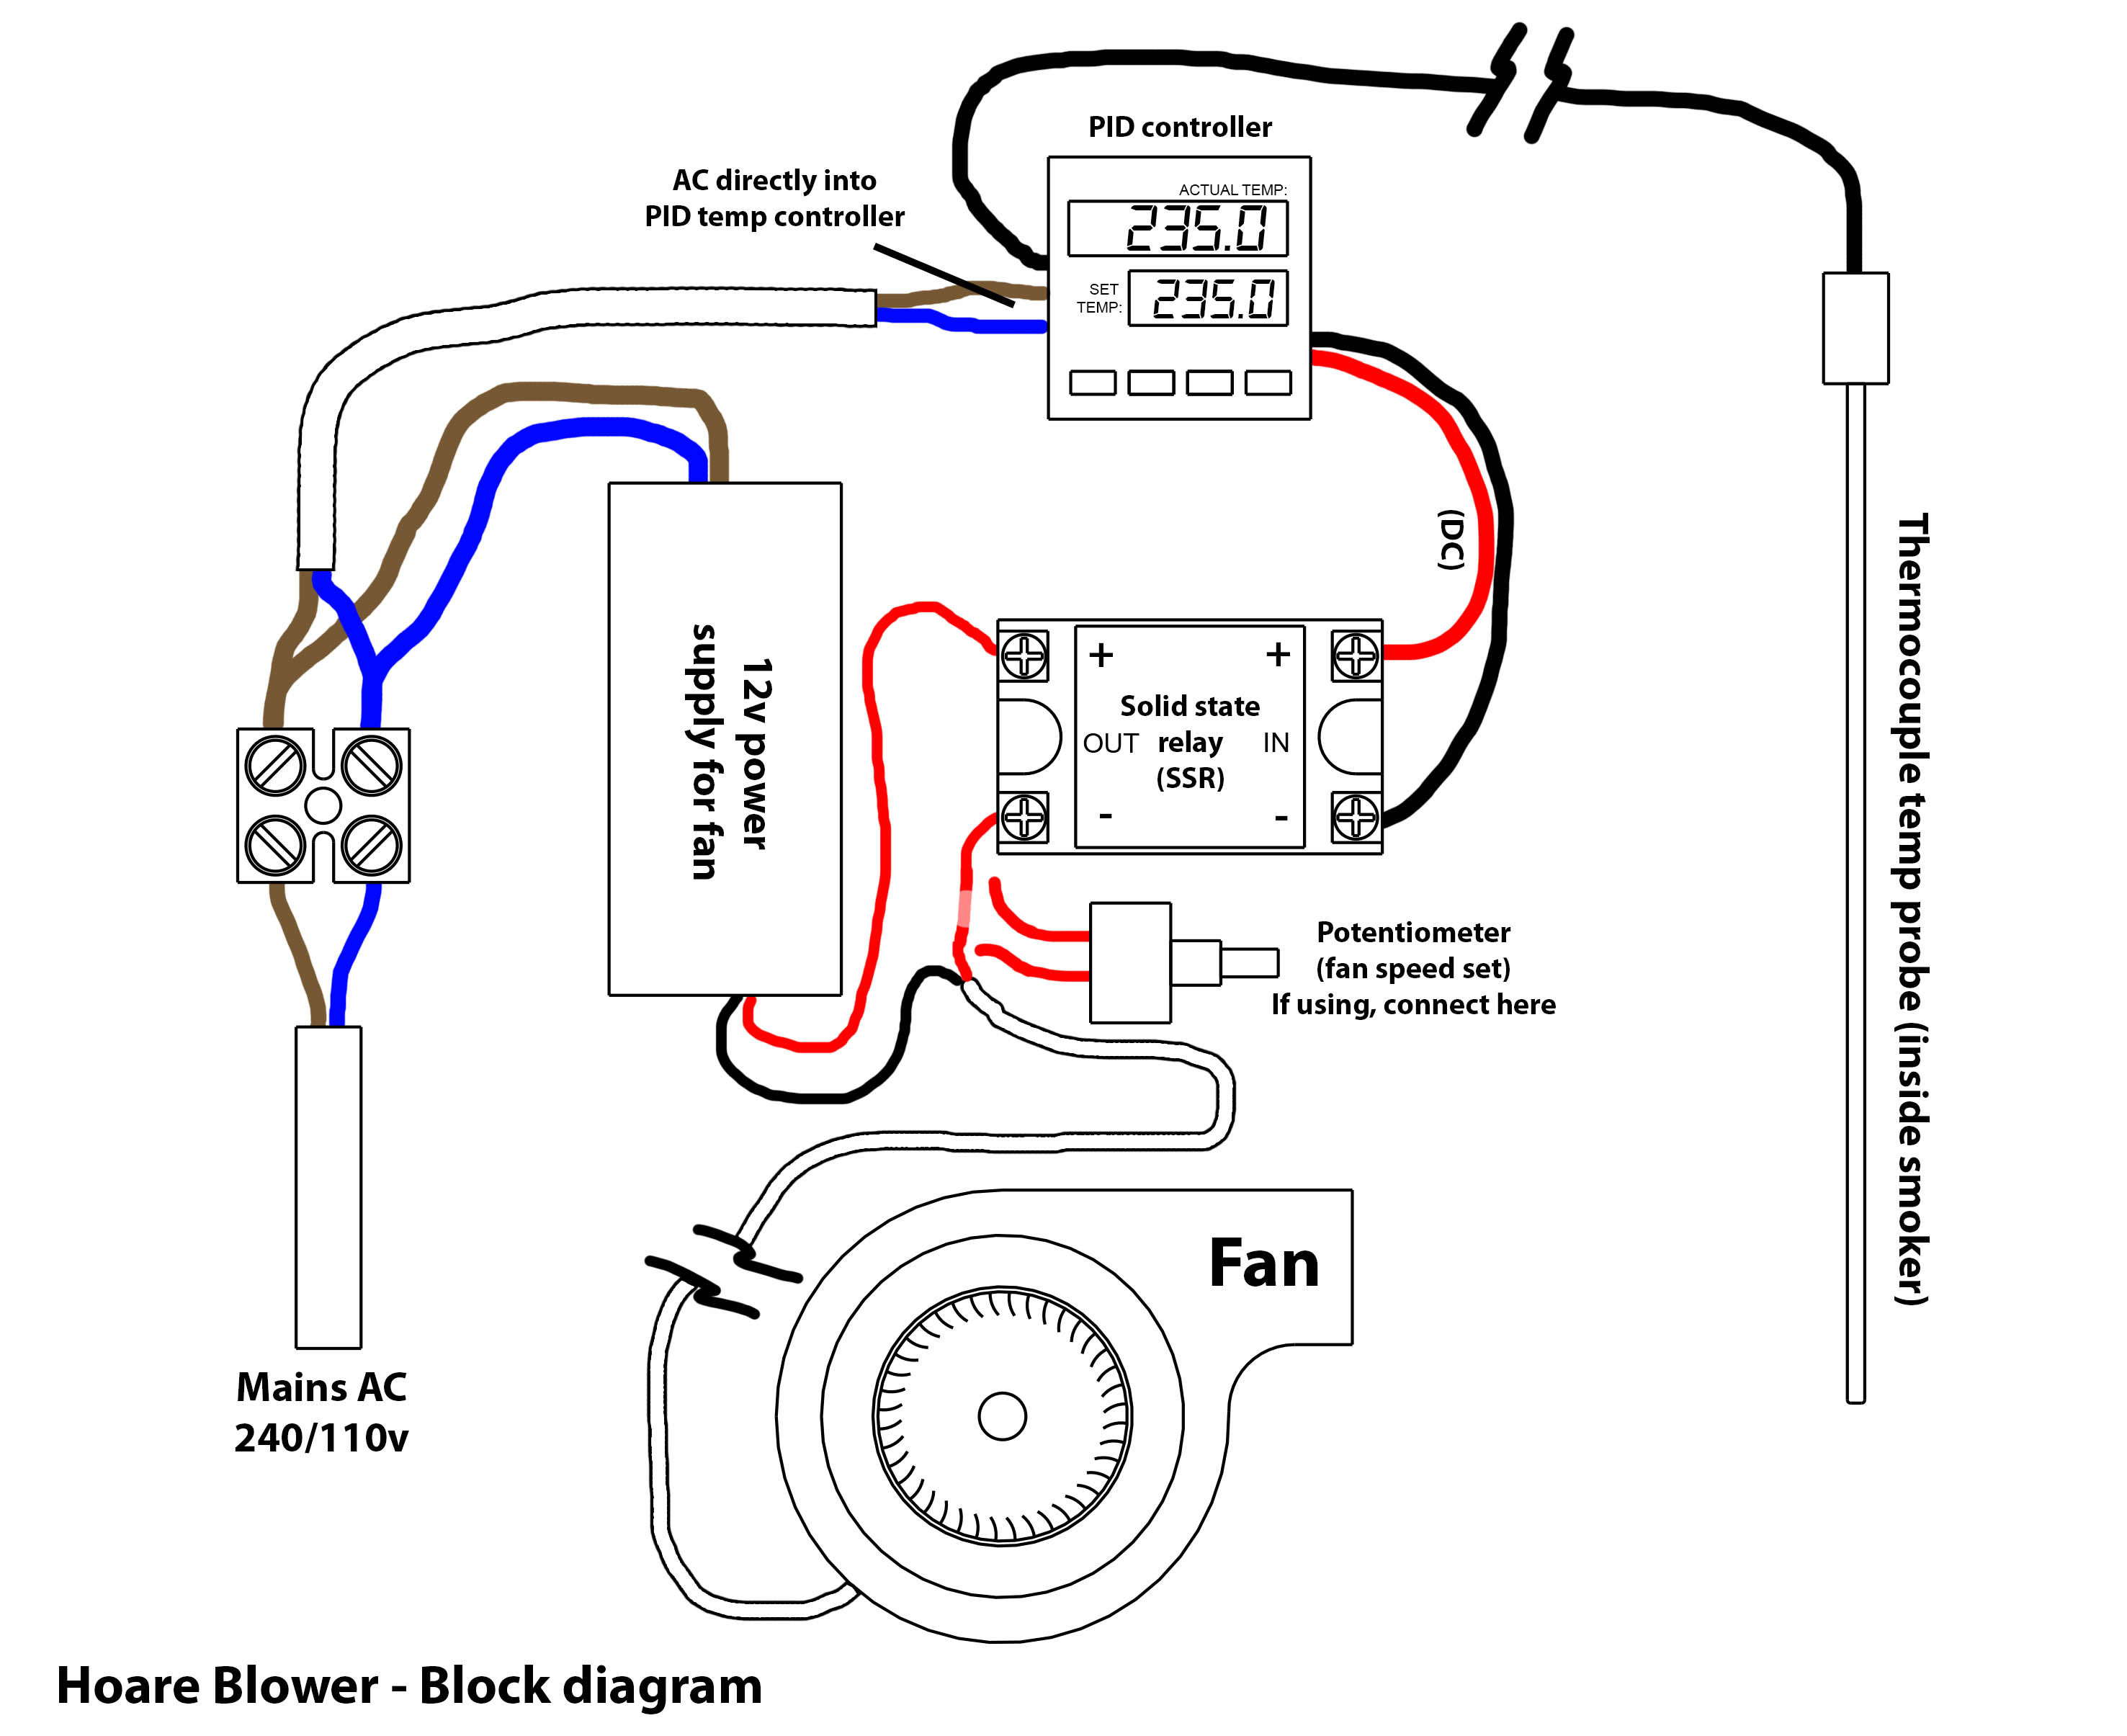 electric wiring diagrams with Ebm Papst Fan Wiring Diagram on Goodman Wiring Diagram also Wiring Schematic For 1970 S Harley Davidson Gas Golf Cart moreover Patton Heater Pqh307 Wiring Diagram moreover Ez Go Wiring Diagram For 94 as well P767 Aiphone IEJA.